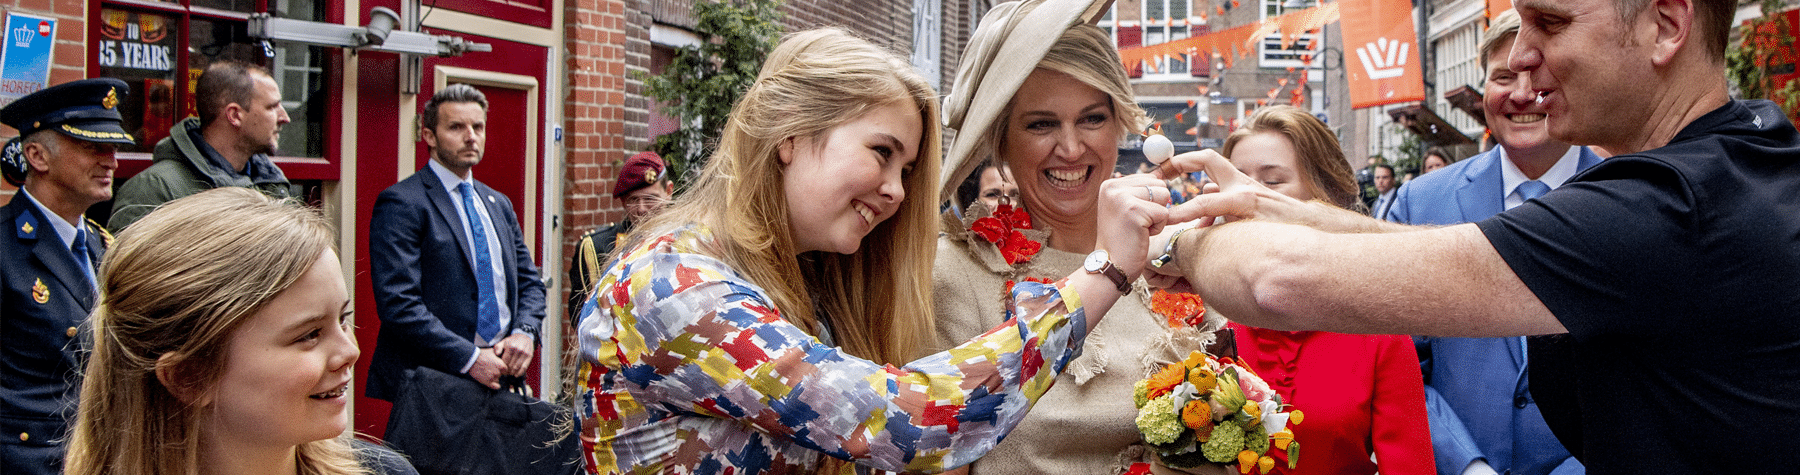 It's a wrap: Koningsdag 2019